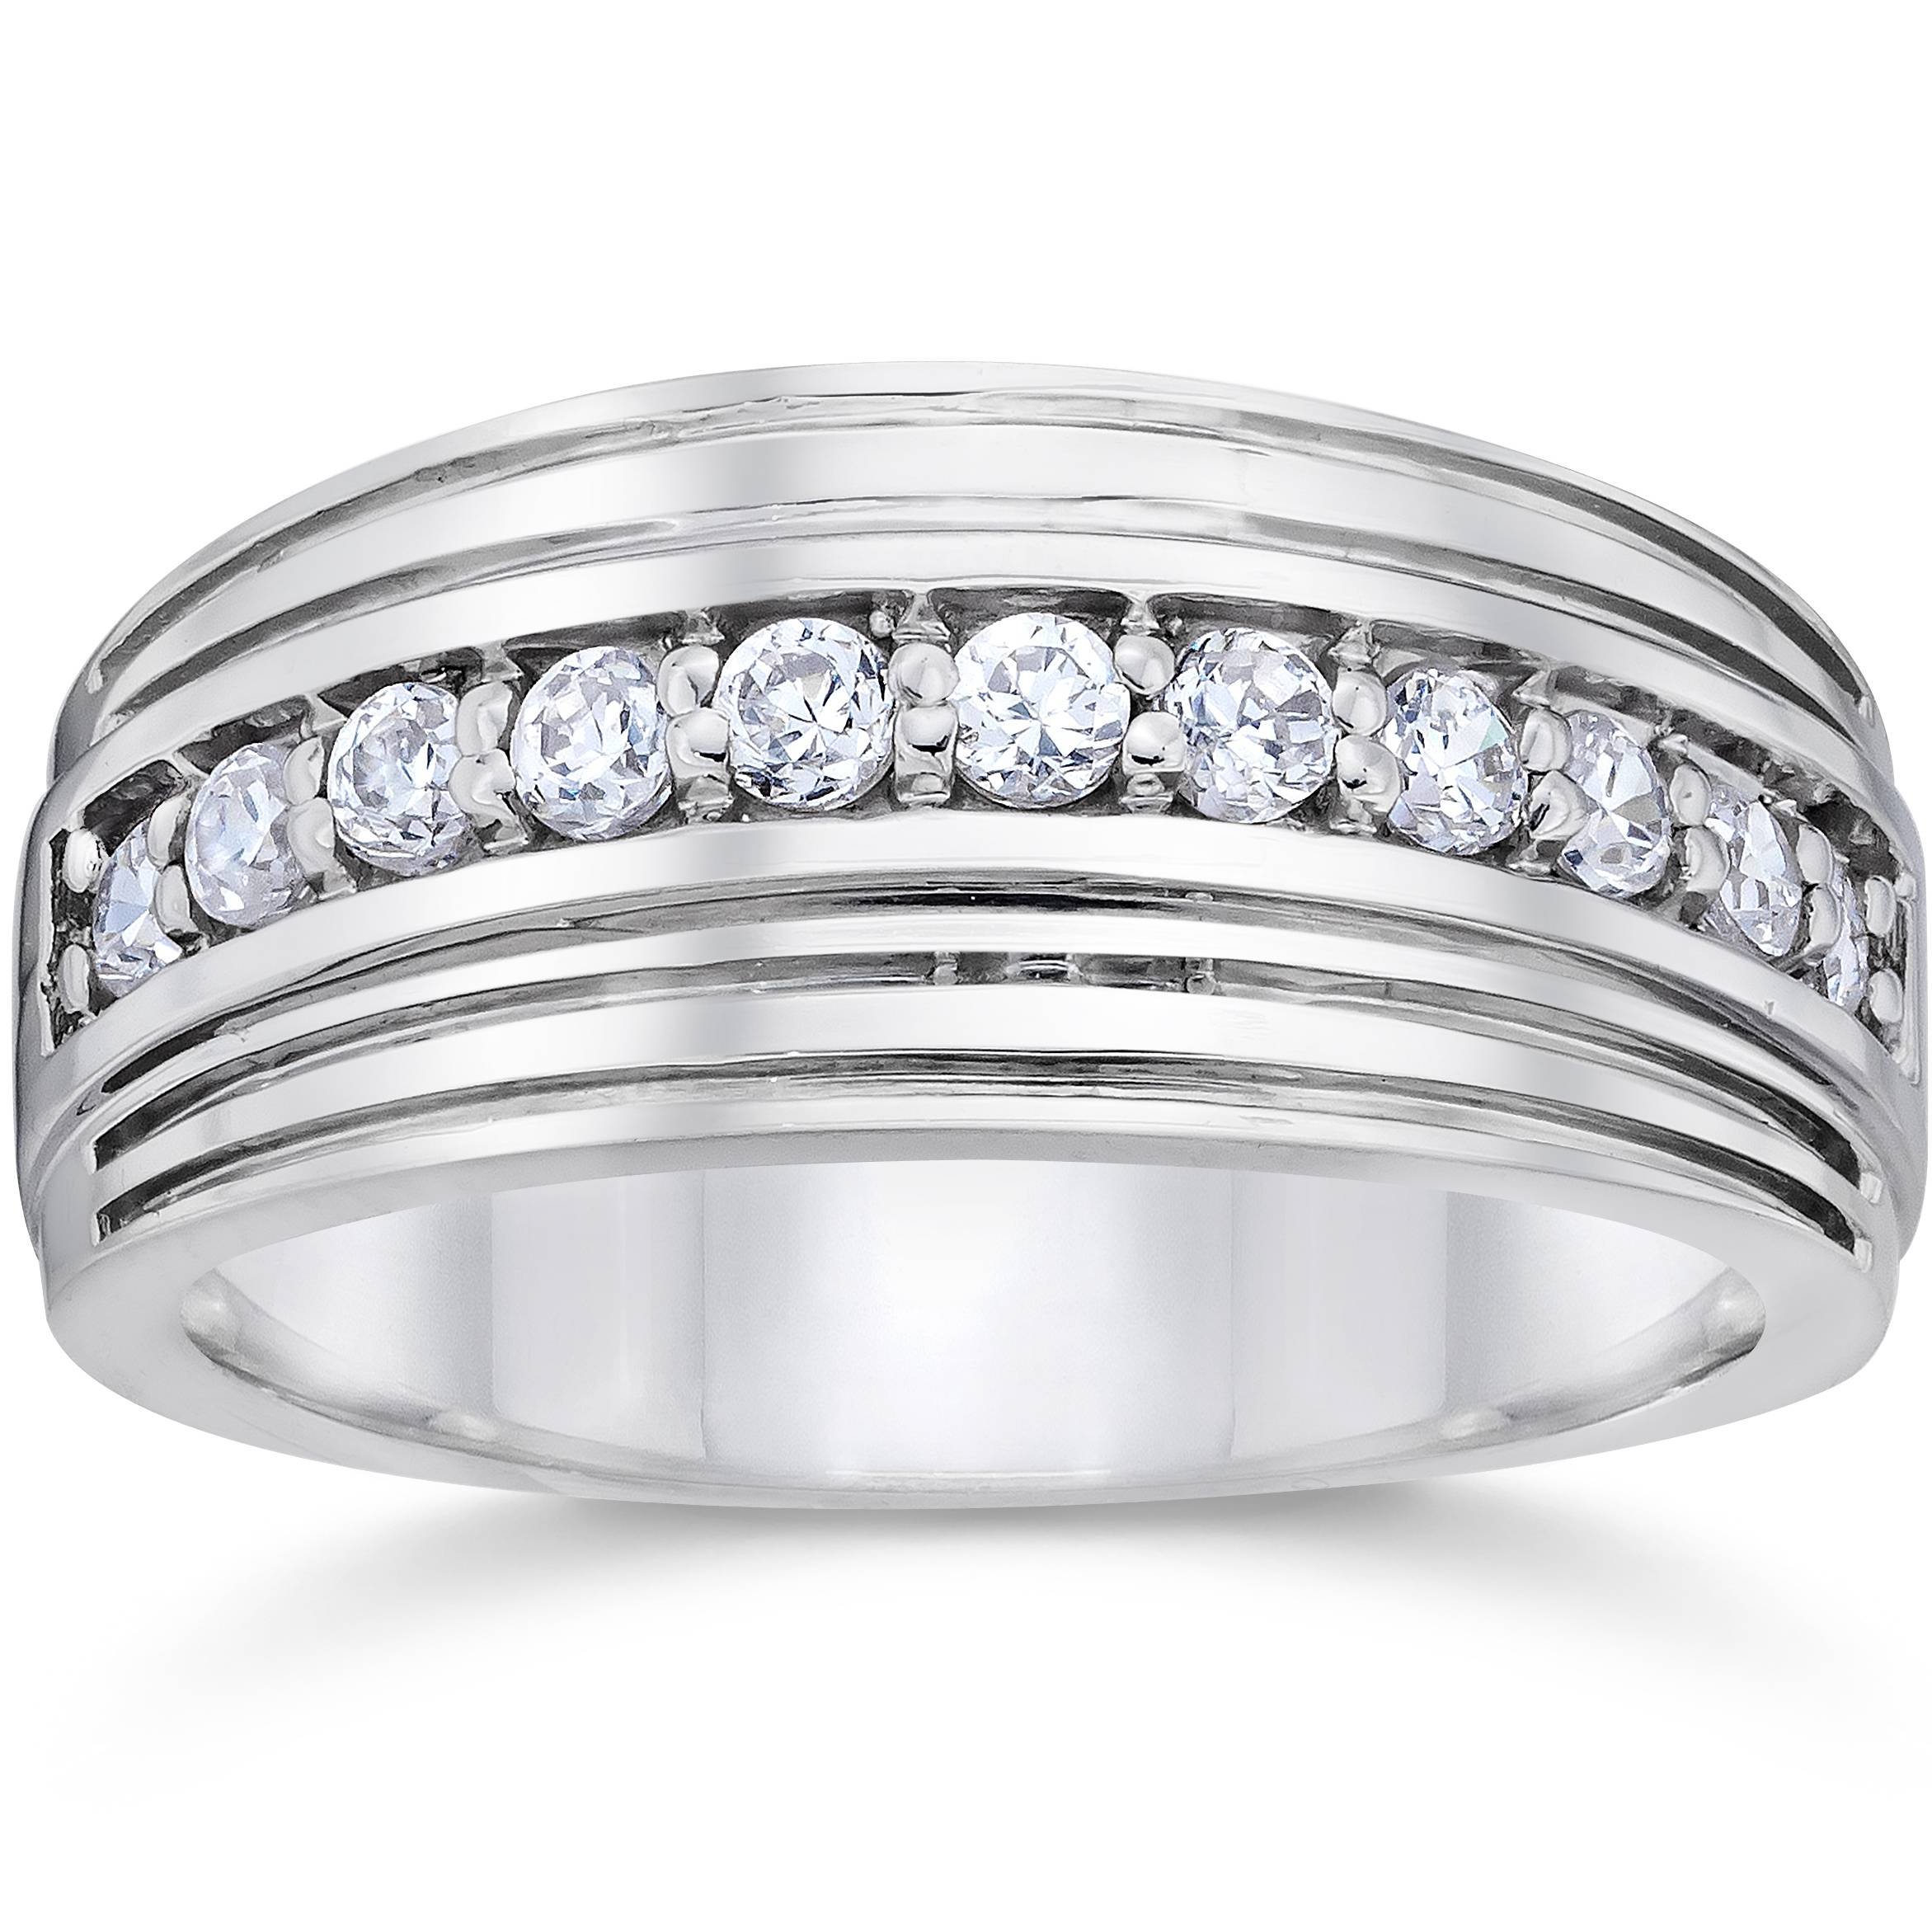 1 2 carat mens diamond wedding ring 10k white gold ebay for Mens wedding rings with diamonds white gold